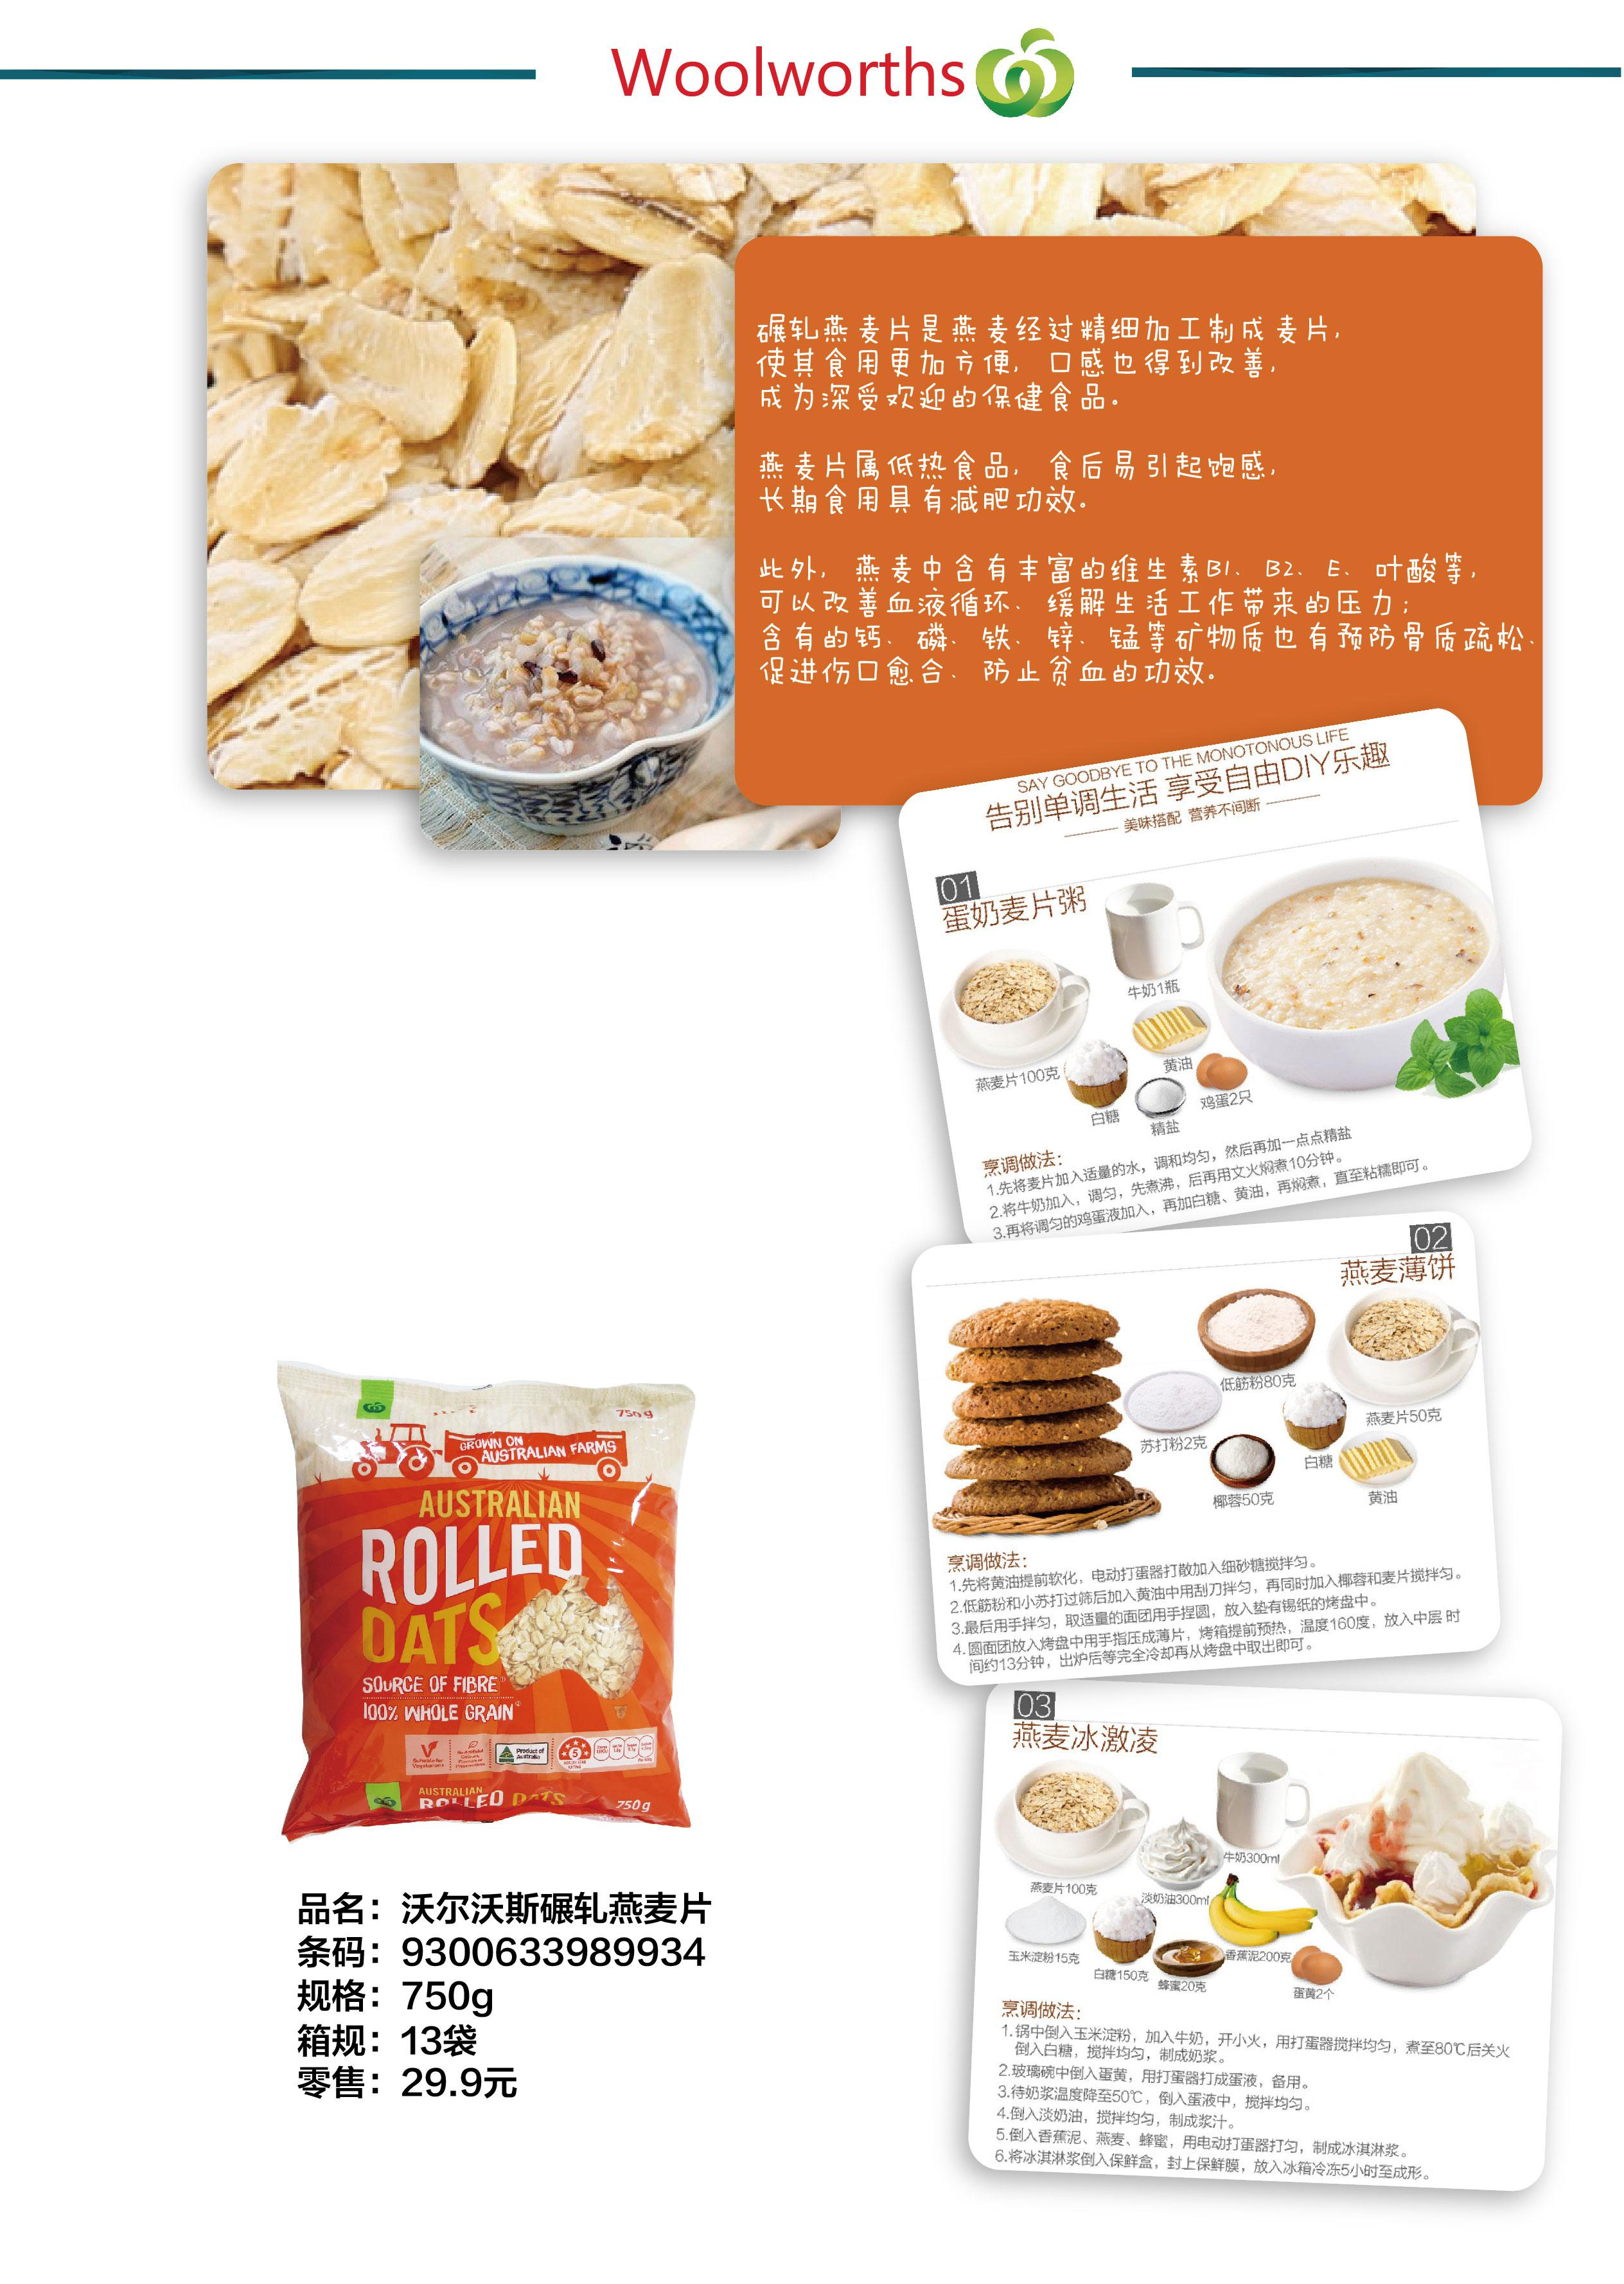 Woolworths Australian rolled oatmeal/Quick Oats